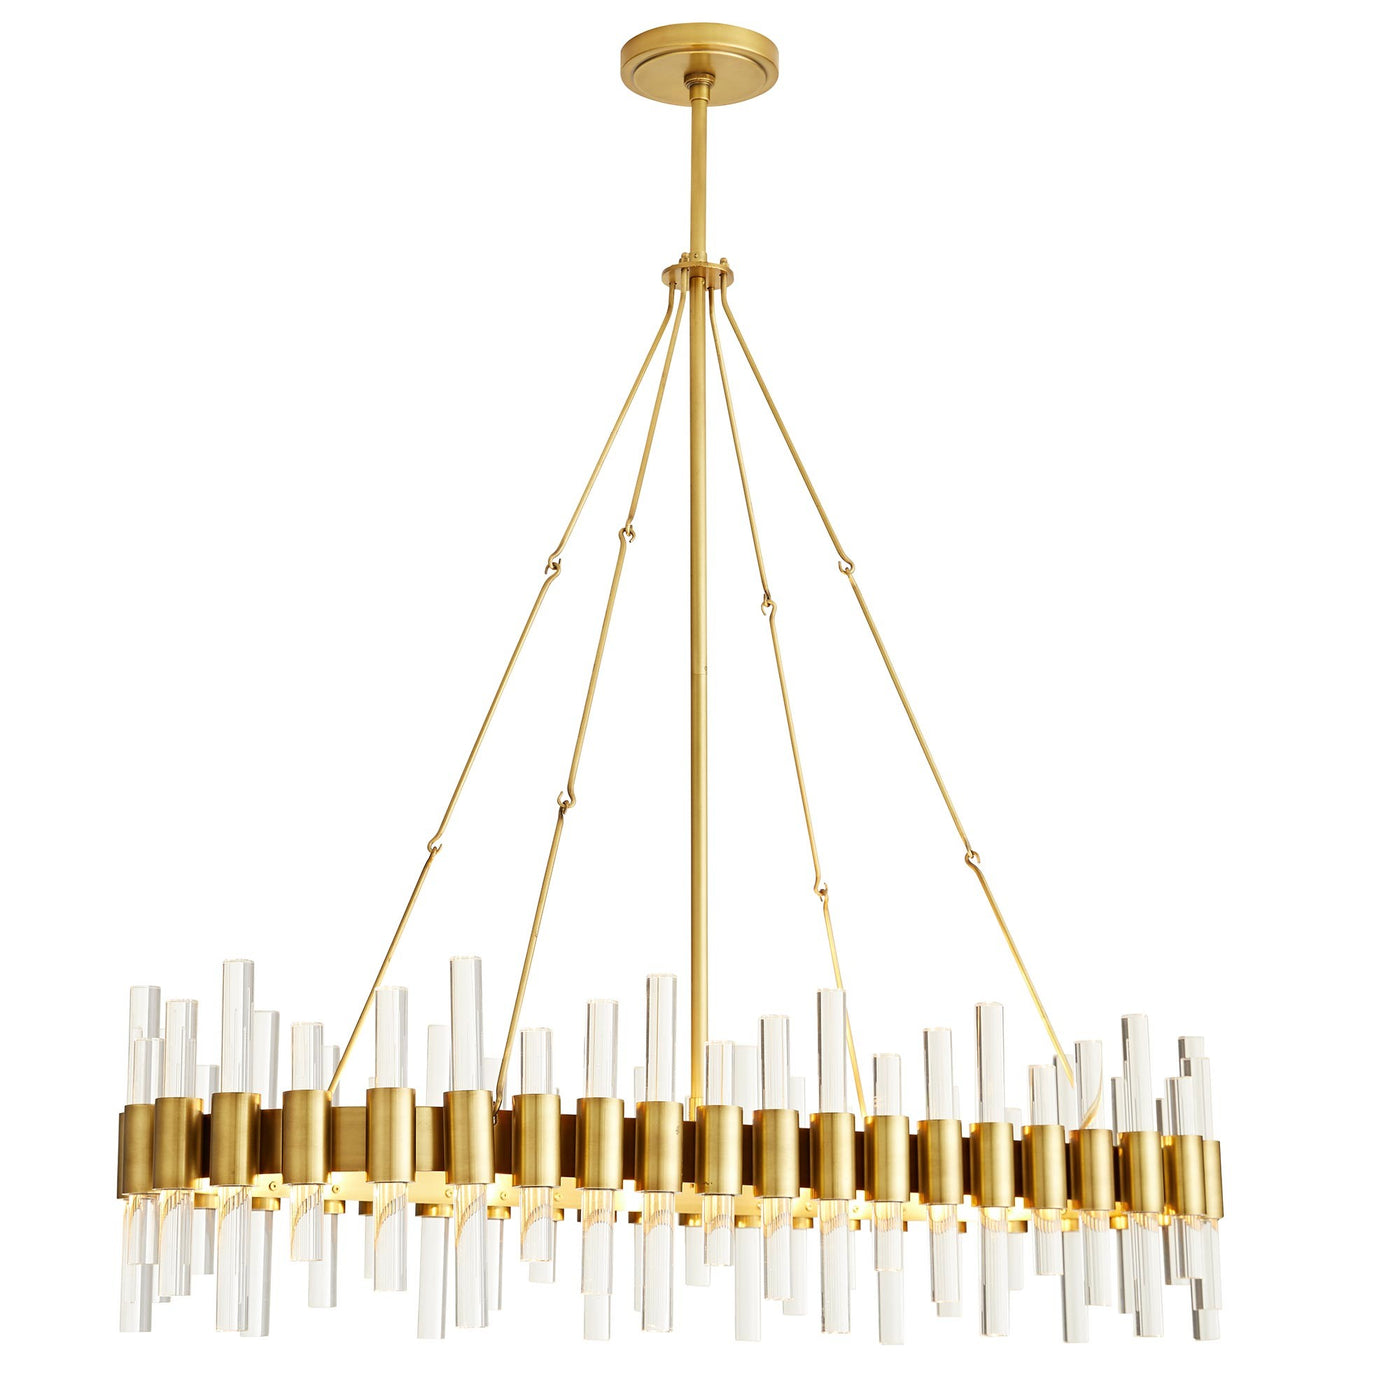 arteriors home haskell oval chandelier full view side